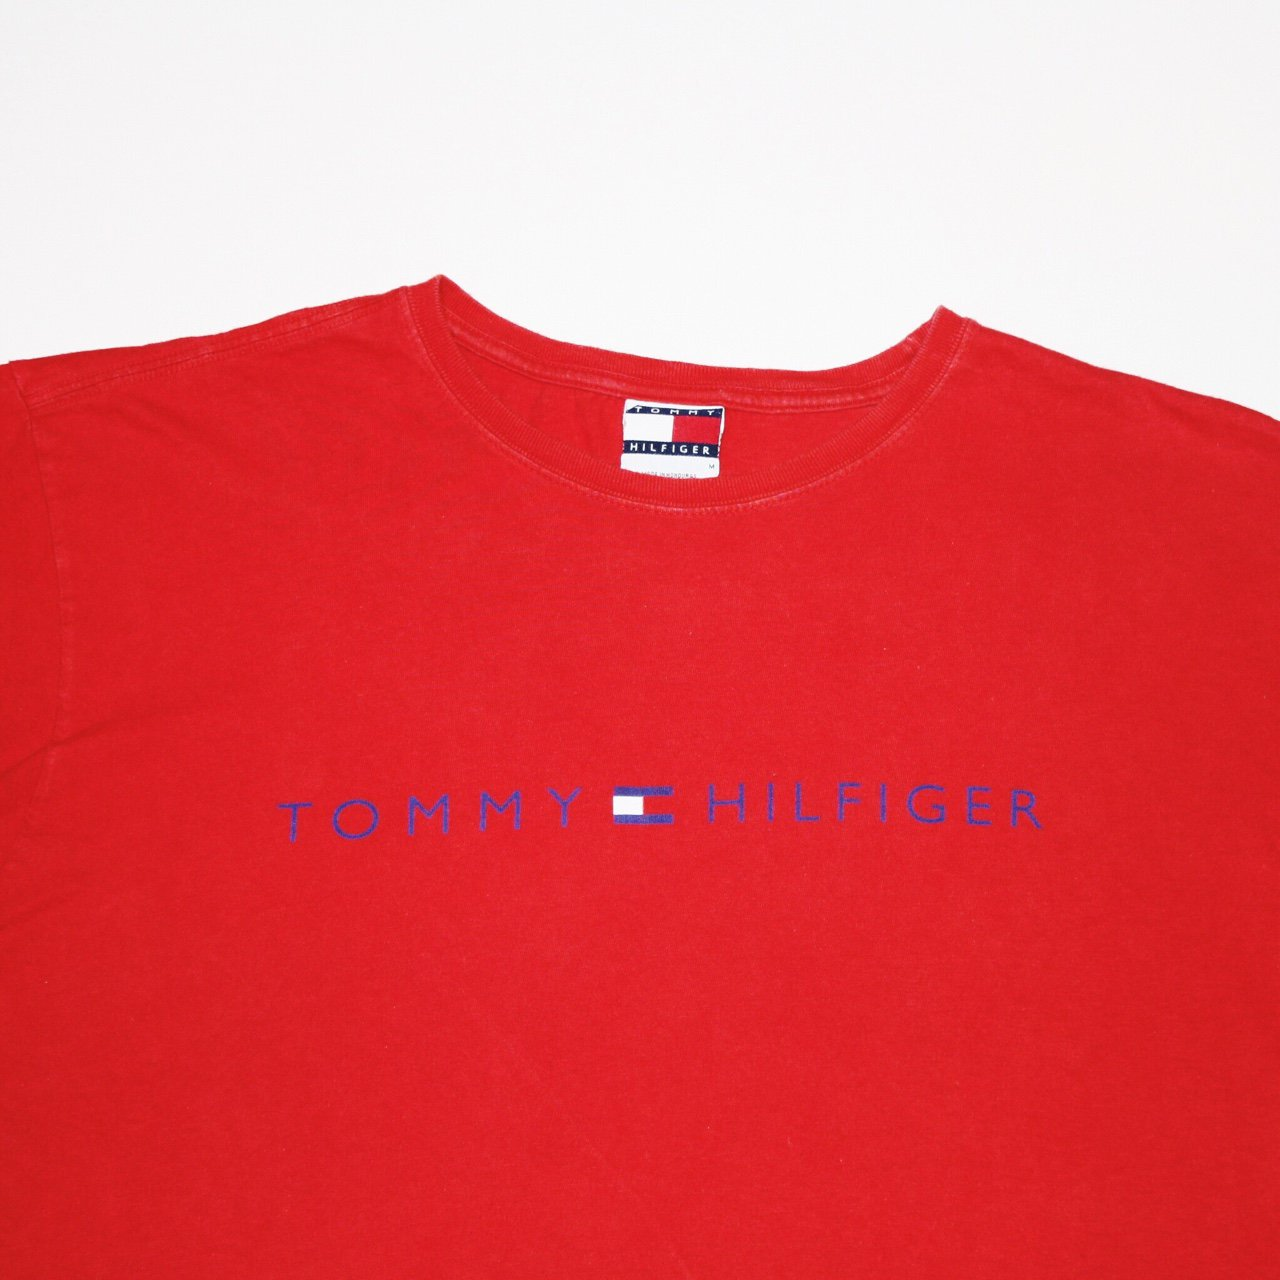 9a484fd9eb @harrisdukeuk. 2 years ago. England, UK. Tommy Hilfiger T Shirt - Spellout  & Red In Colour - Men's Medium ...